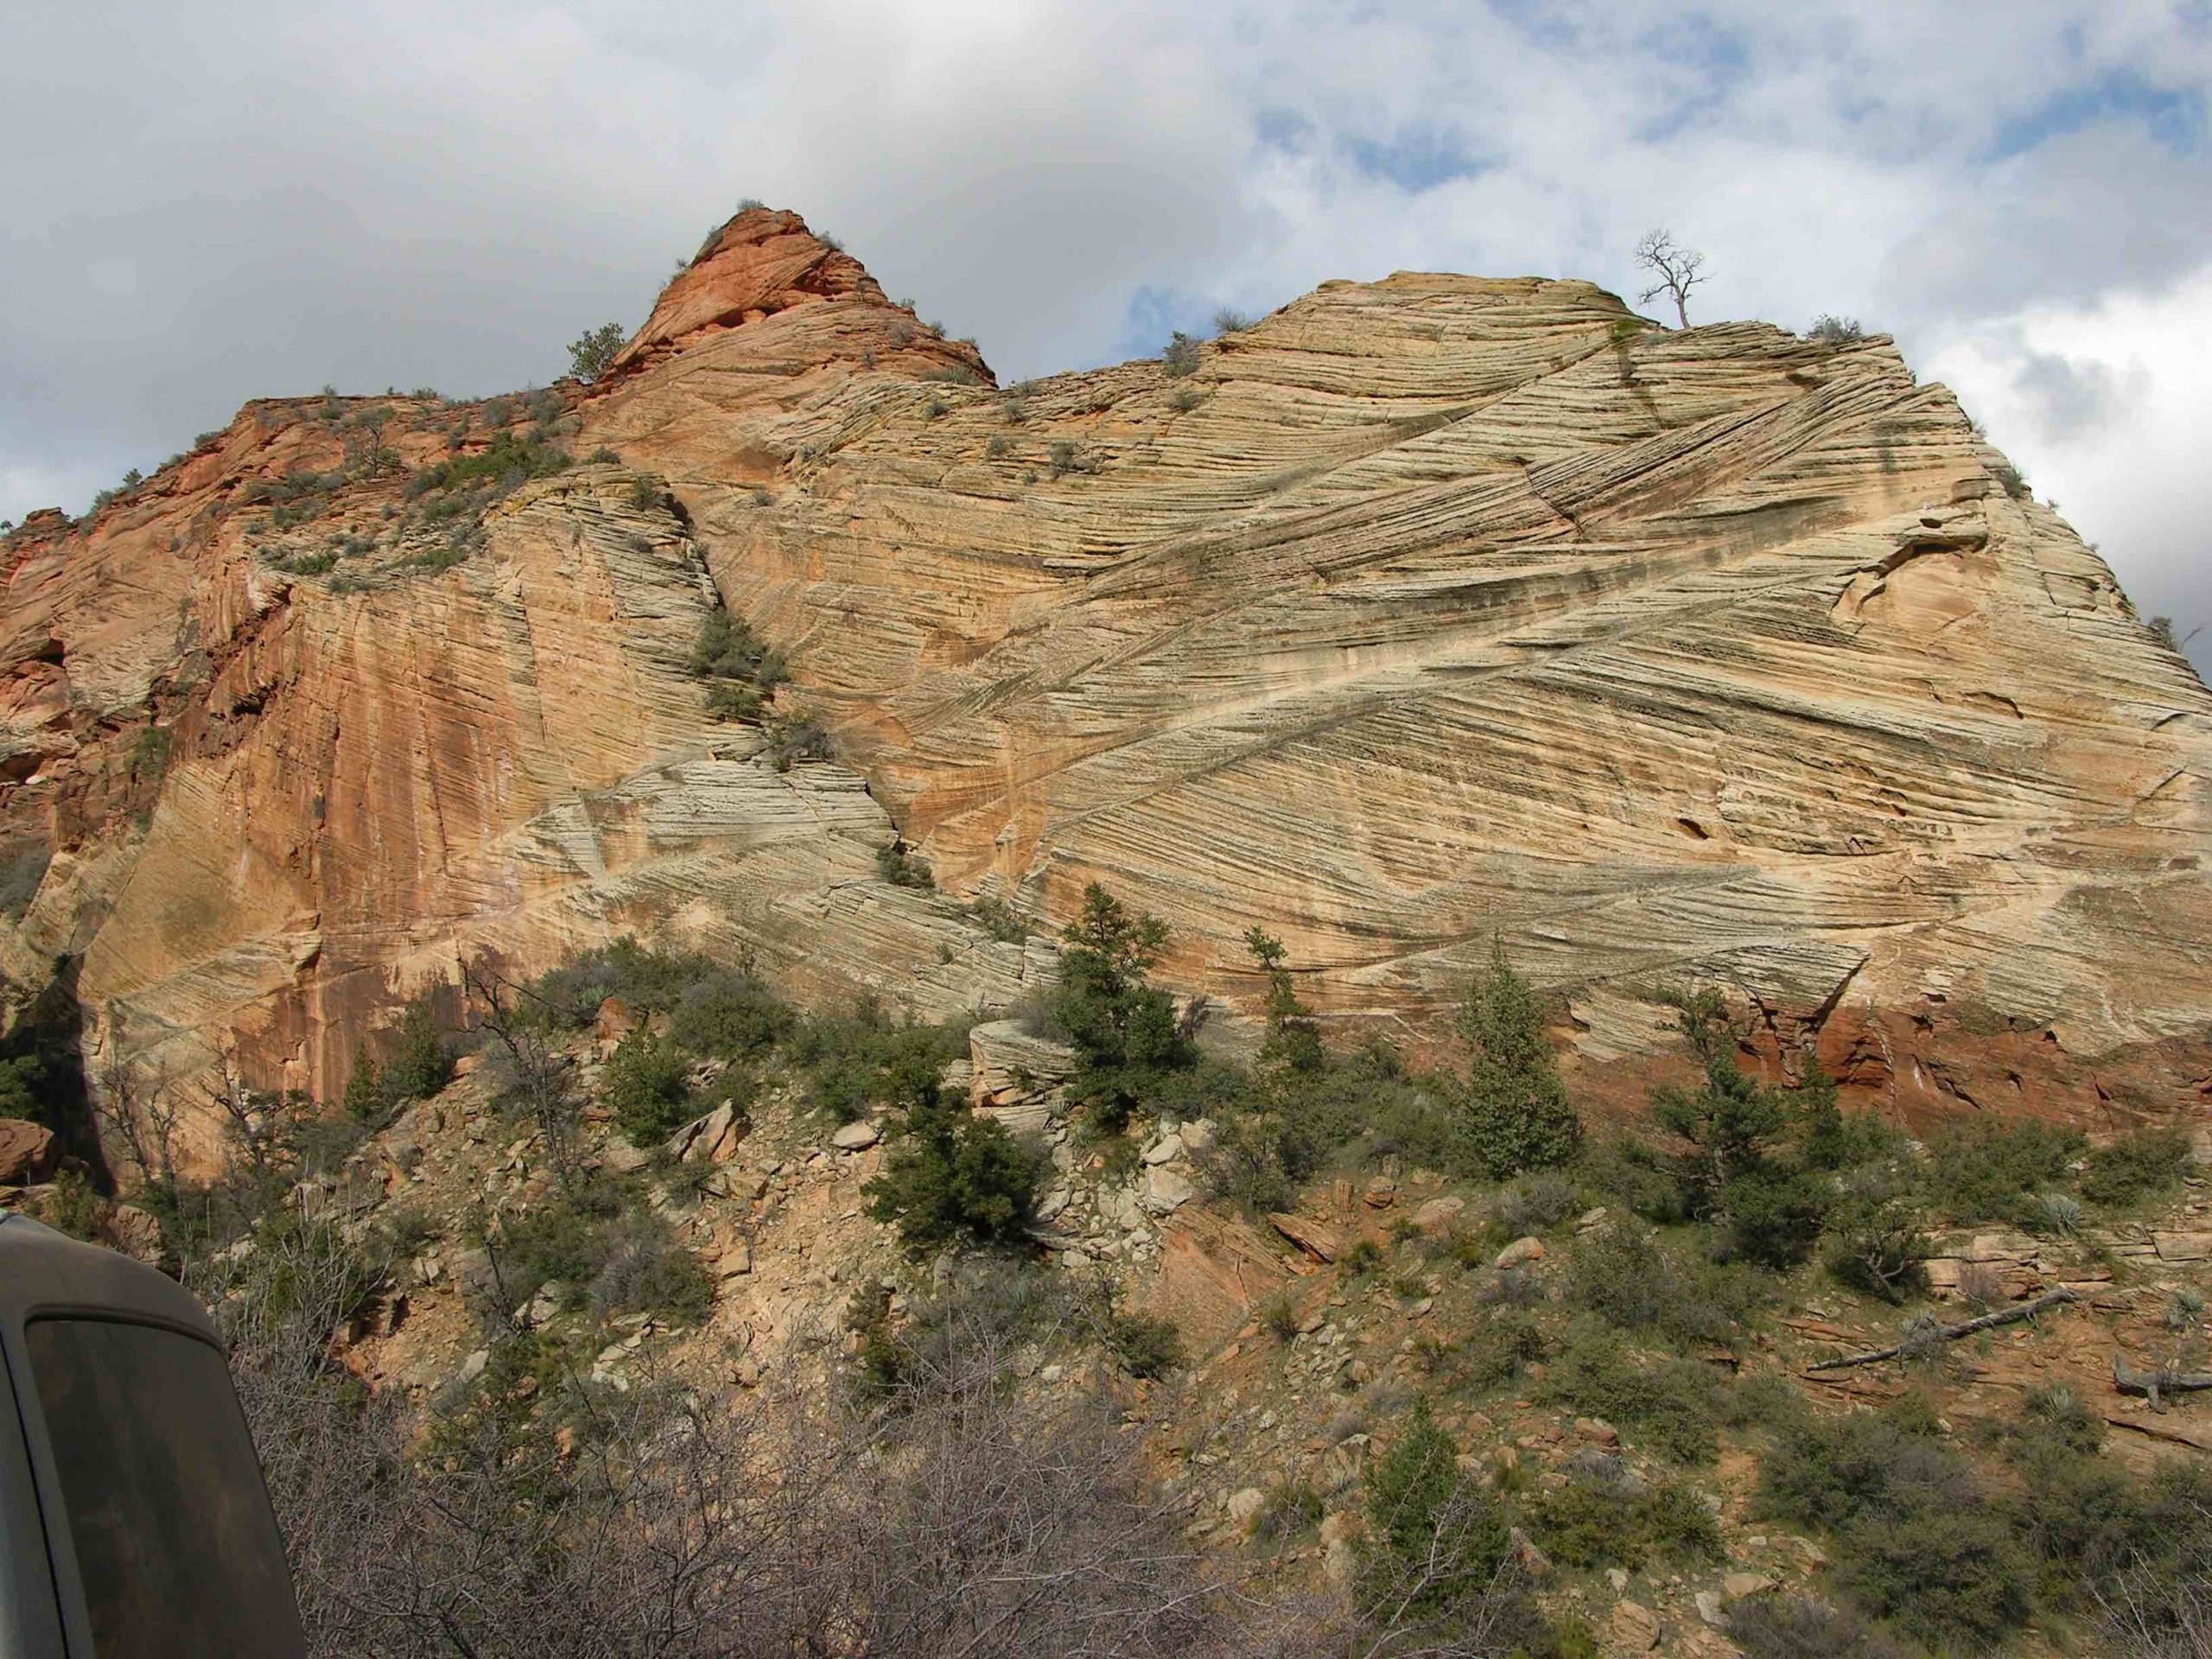 This image shows an example of cross-bedding, which looks like layers of sedimentary rocks dipping in different directions.